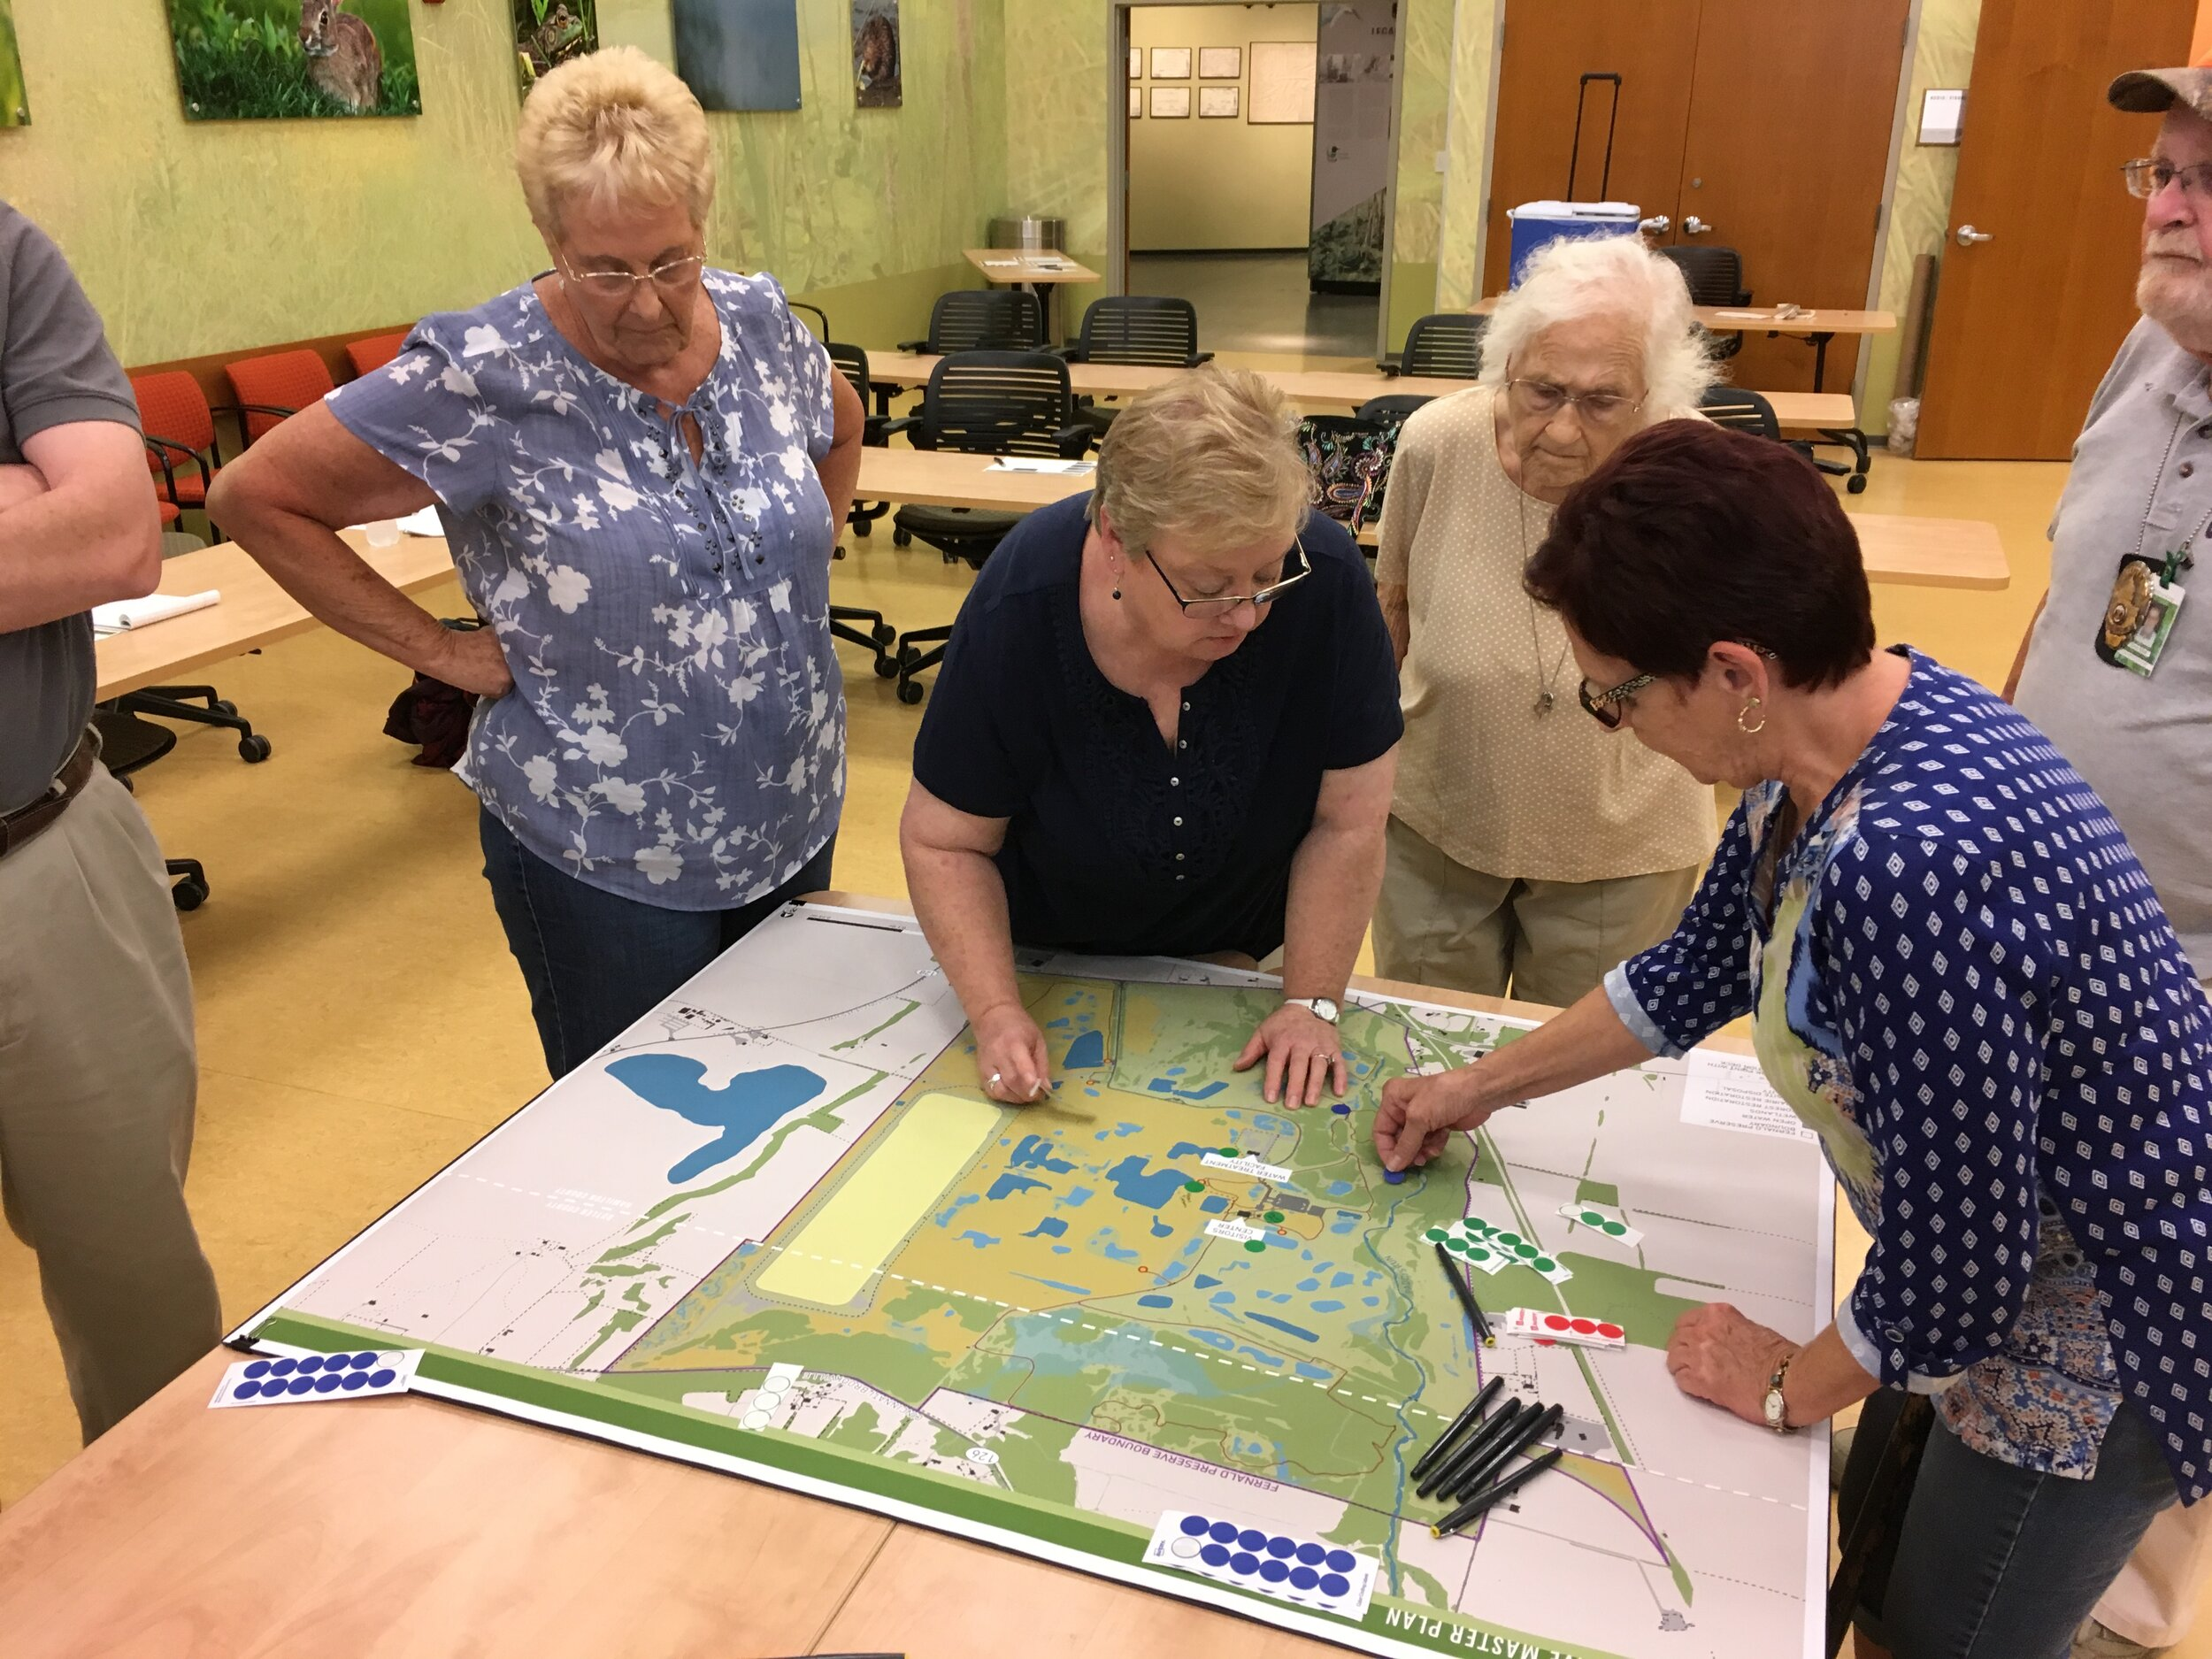 Figure 5: A series of public workshops were hosted at the Visitors Center to discuss potential future improvements as part of the 2019 Master Plan Update.